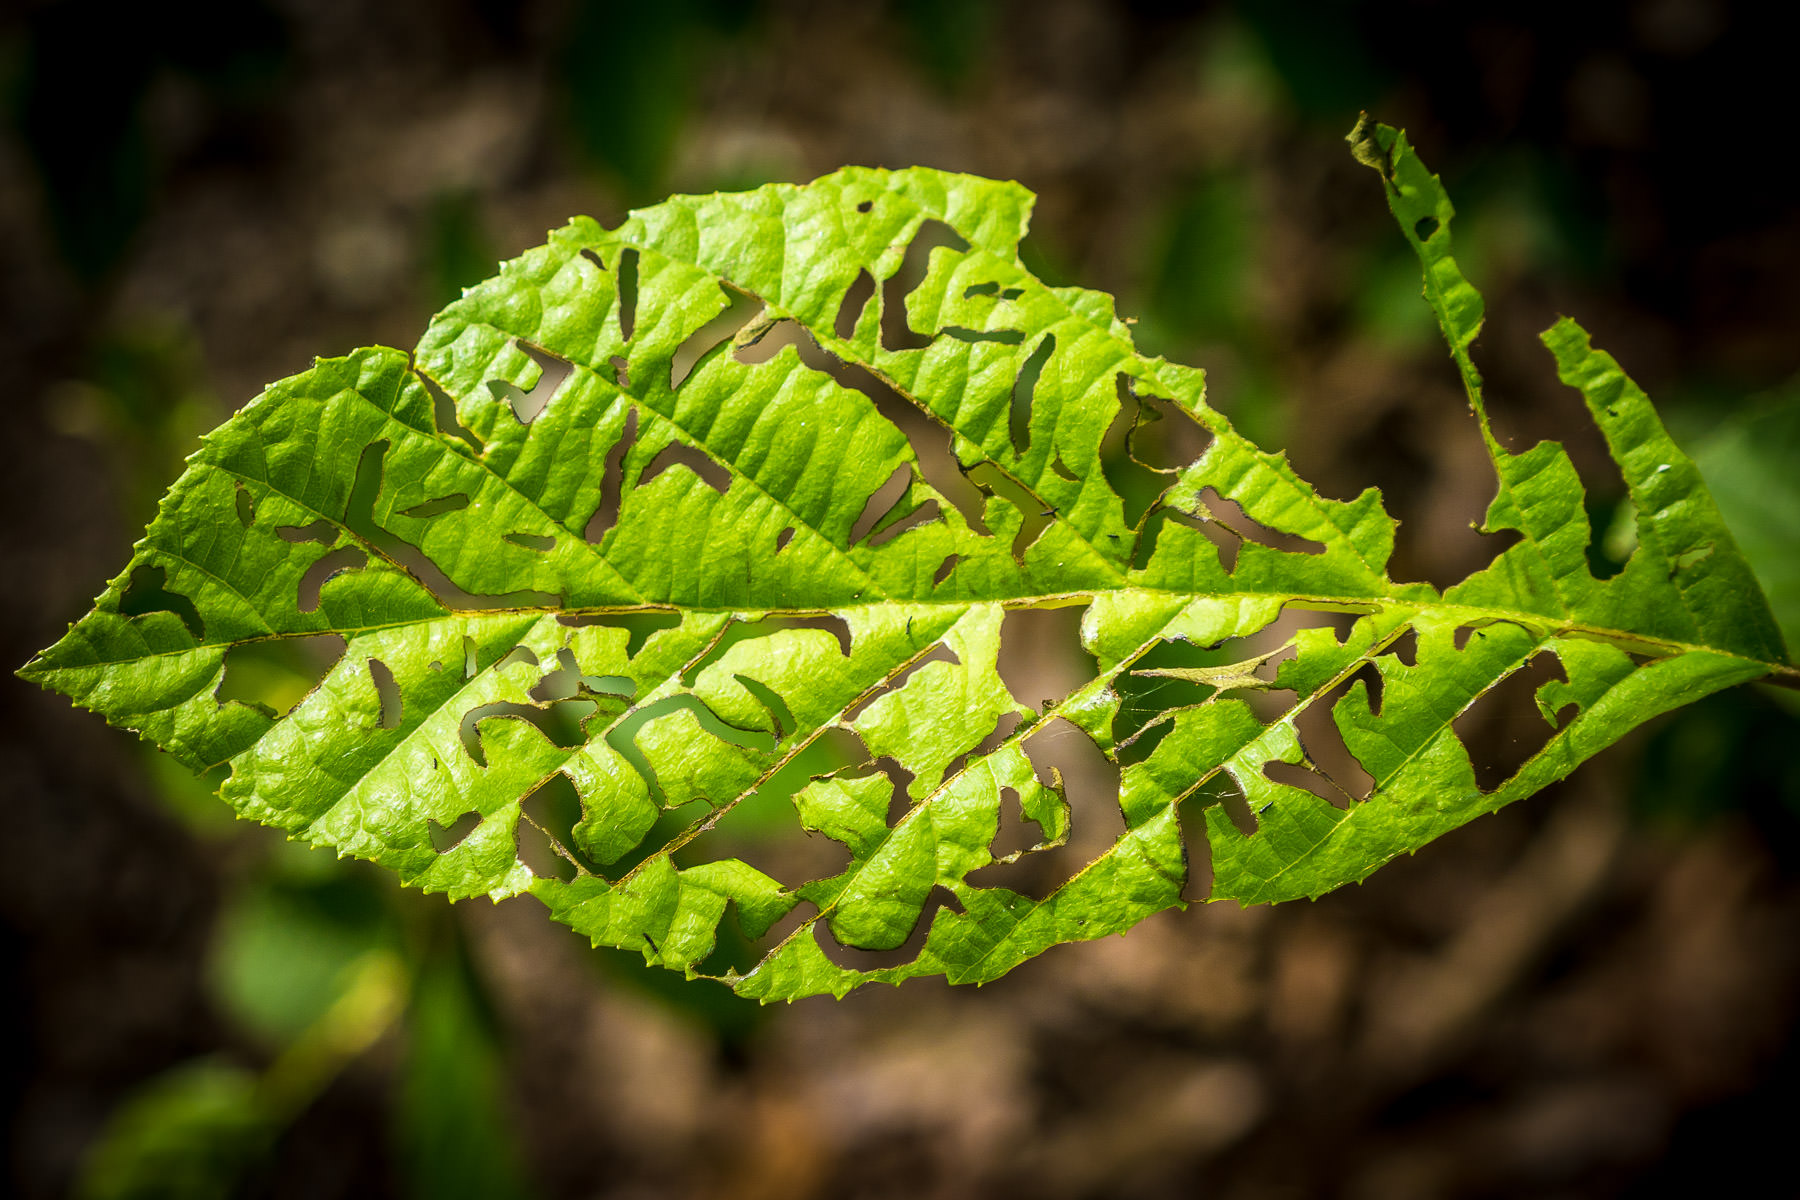 Detail of a leaf partially-eaten by an insect spotted at Tyler State Park, Texas.